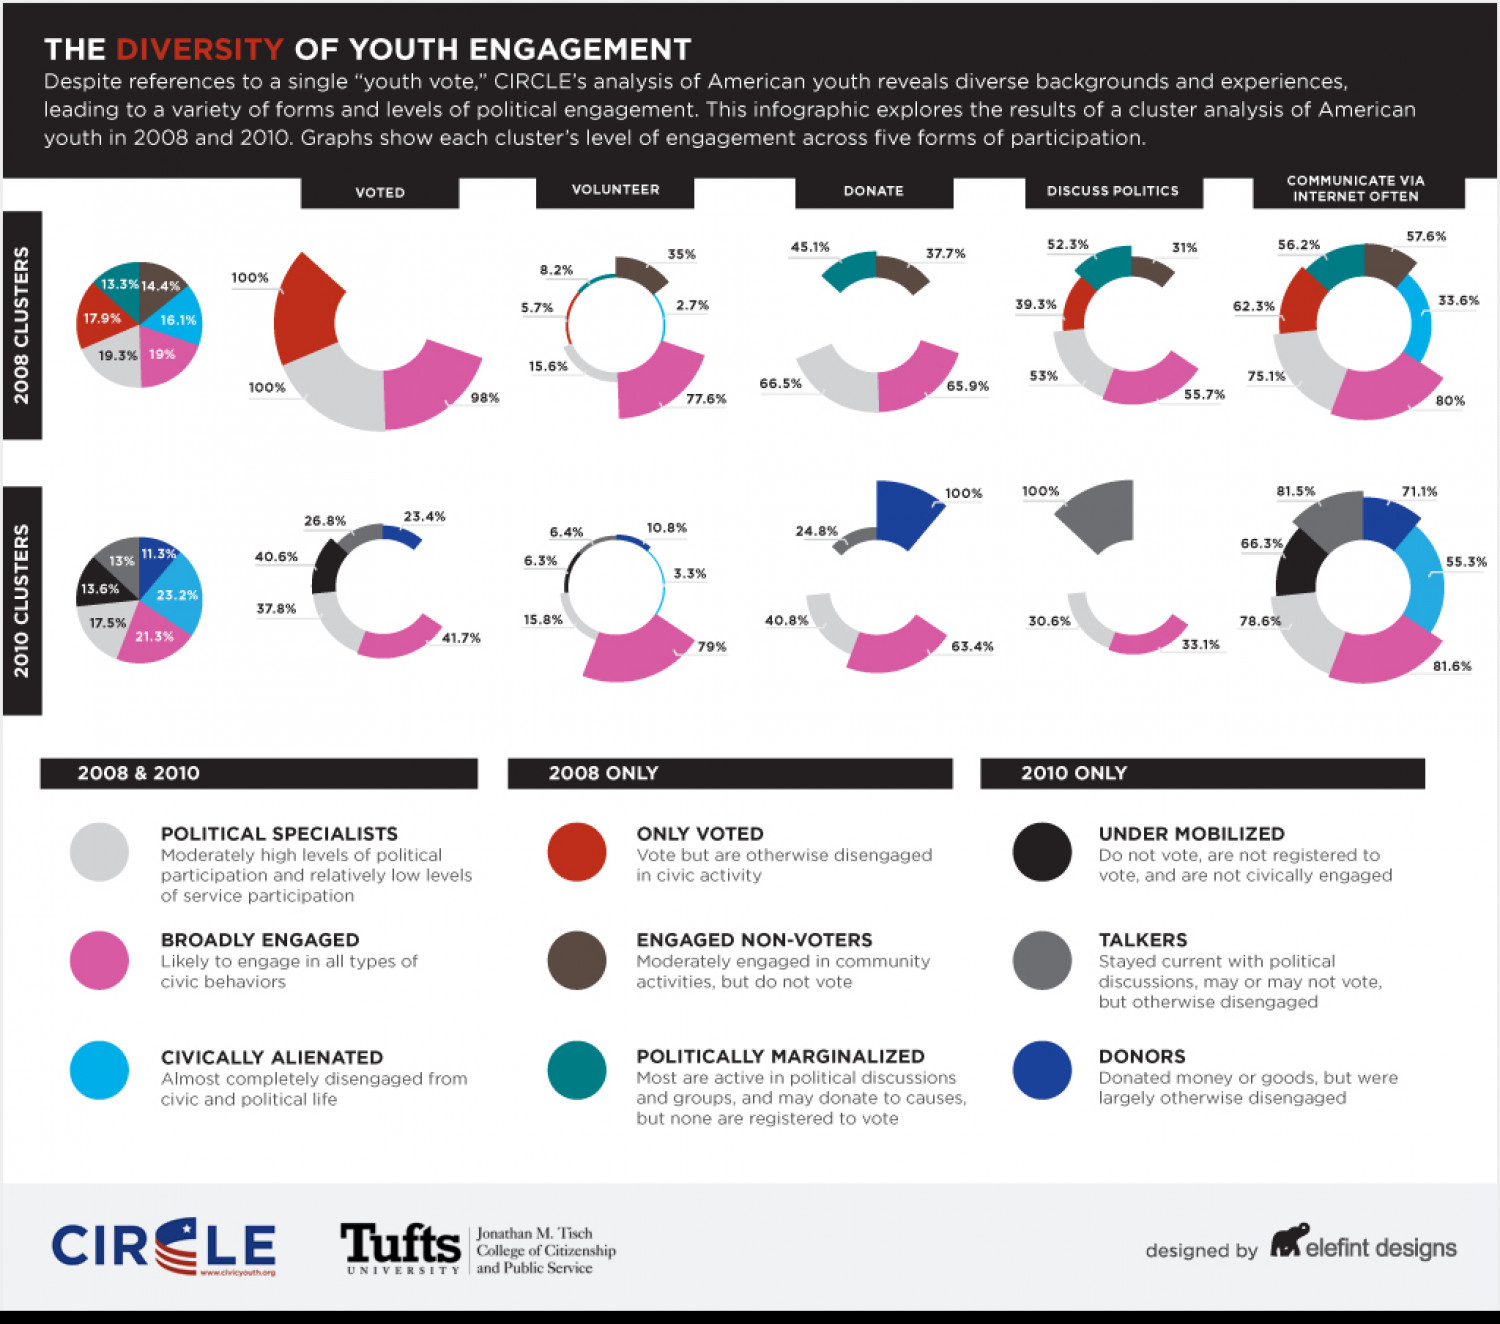 New Study Dispels Stereotypes About Young Voters Ahead of 2012 Elections Infographic